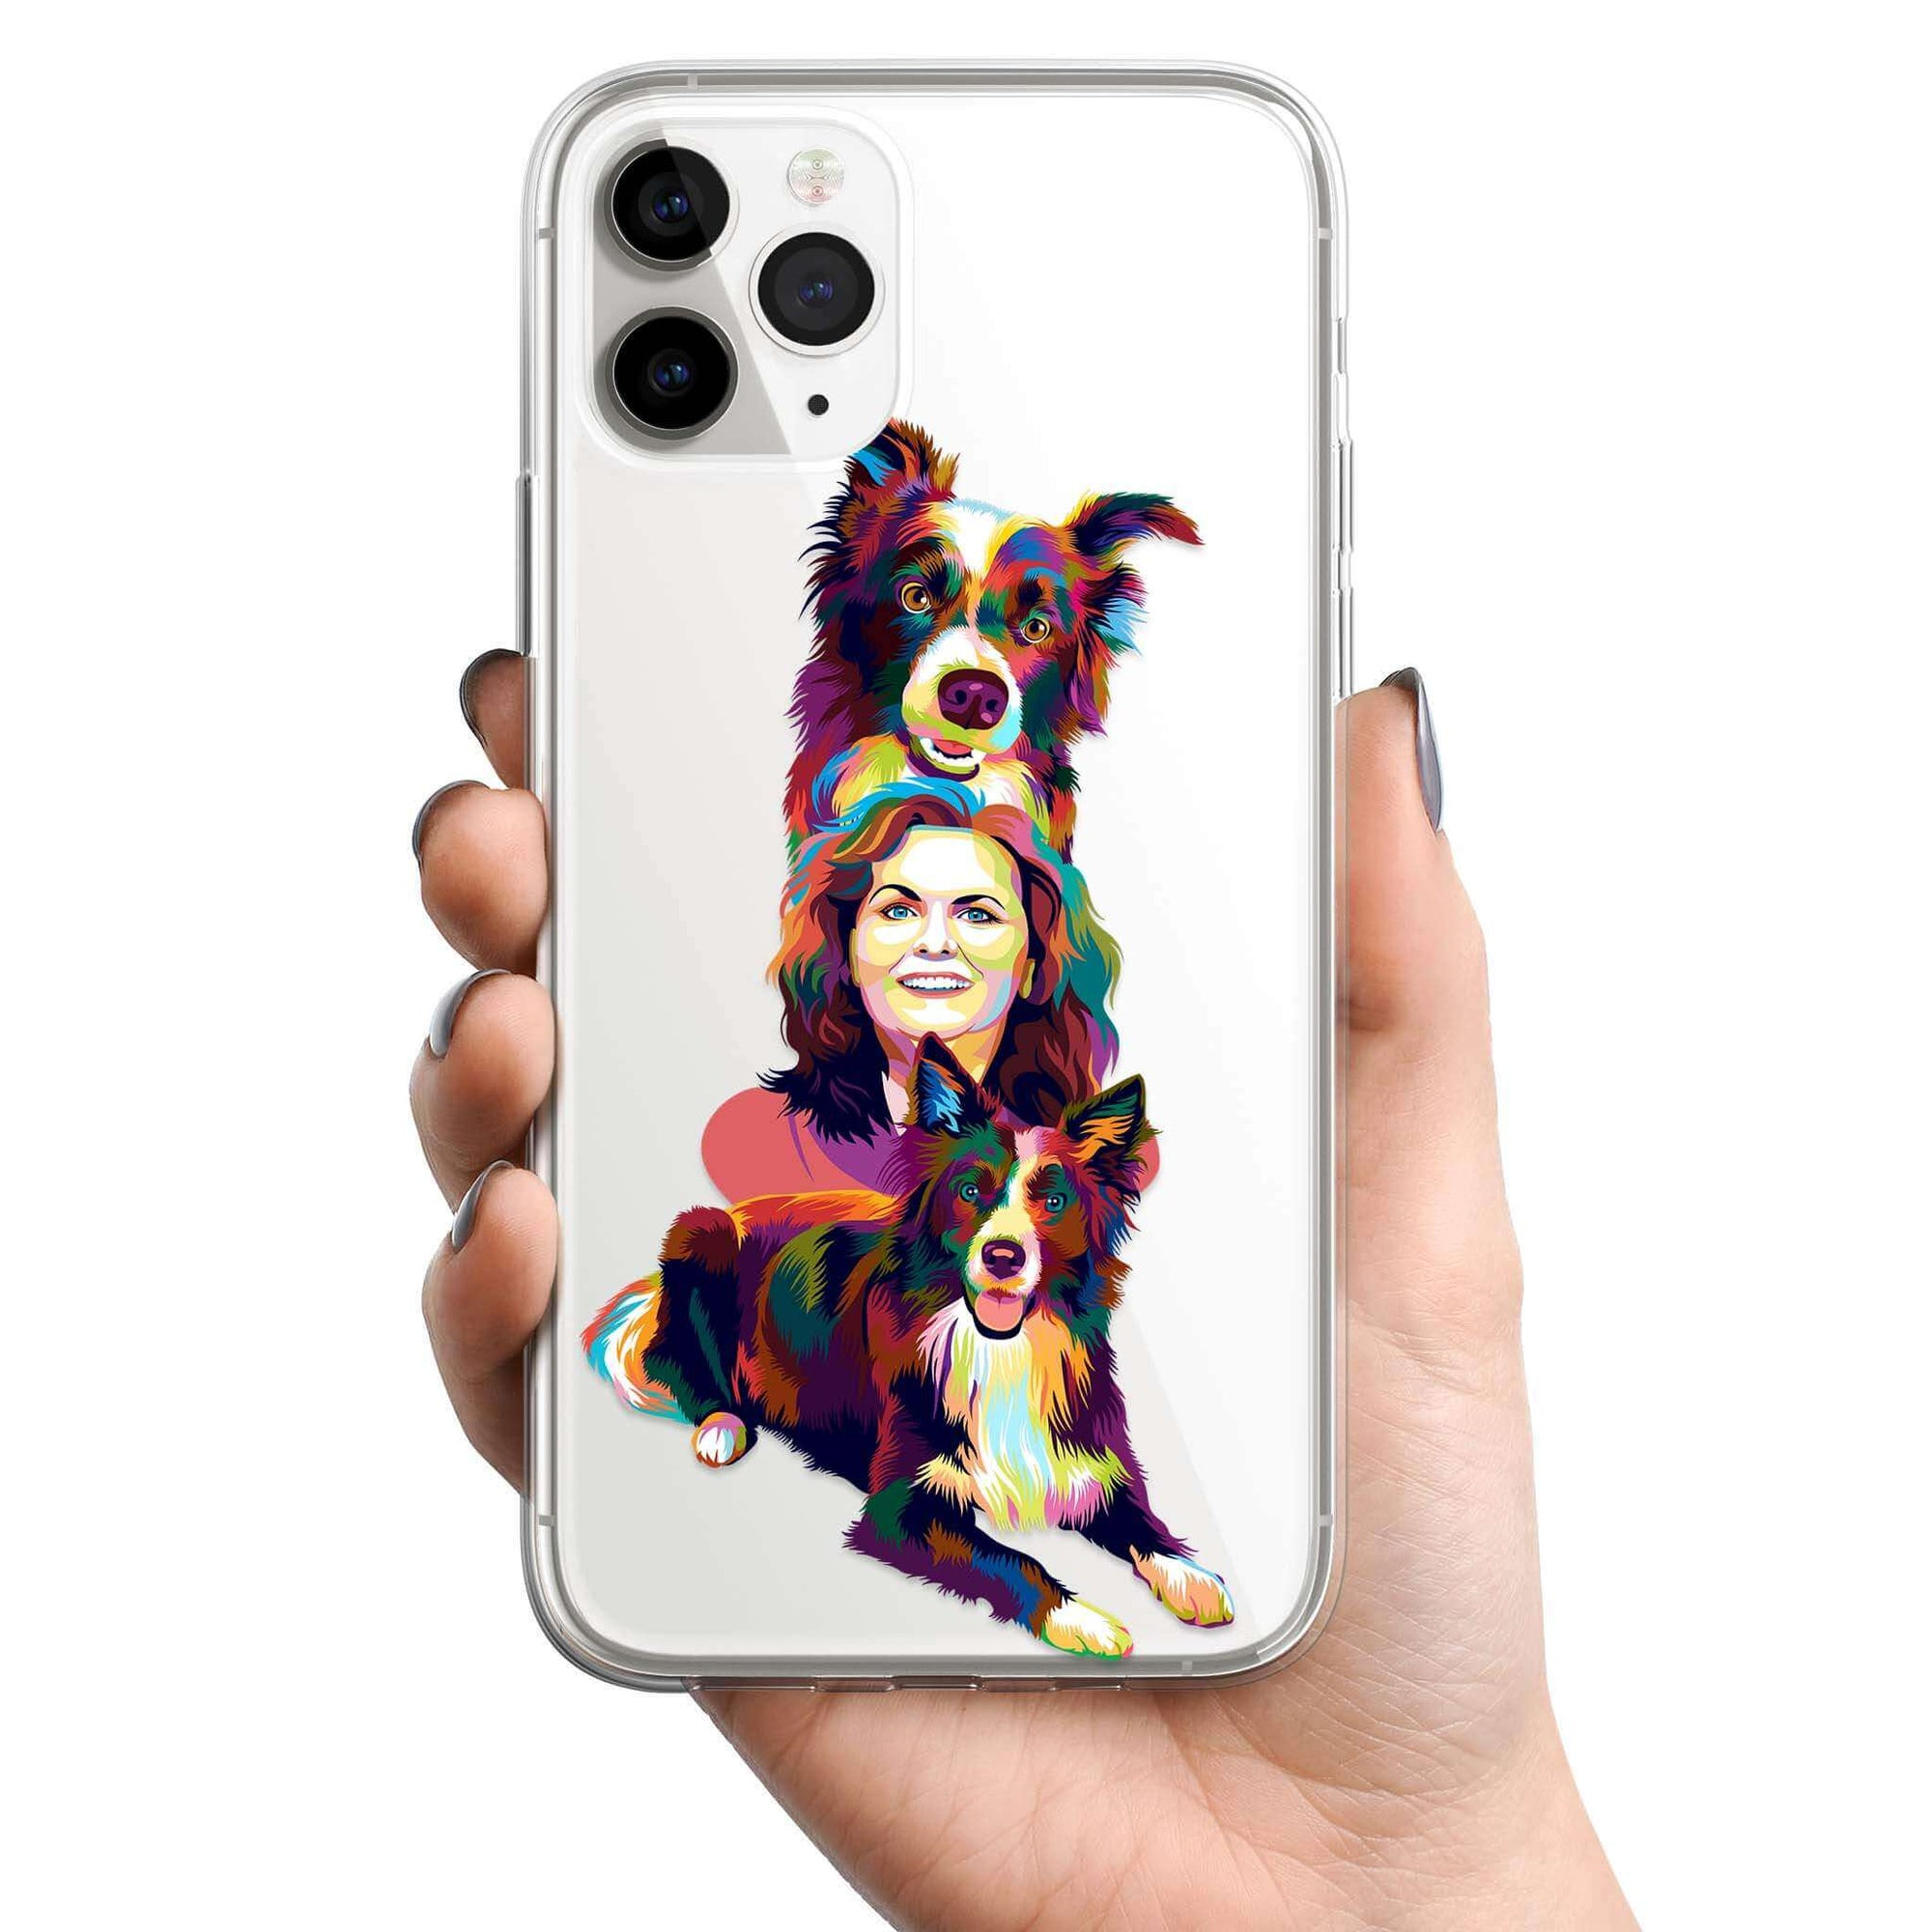 CUSTOM COLOURFUL STYLE FAMILY CLEAR PHONE CASE